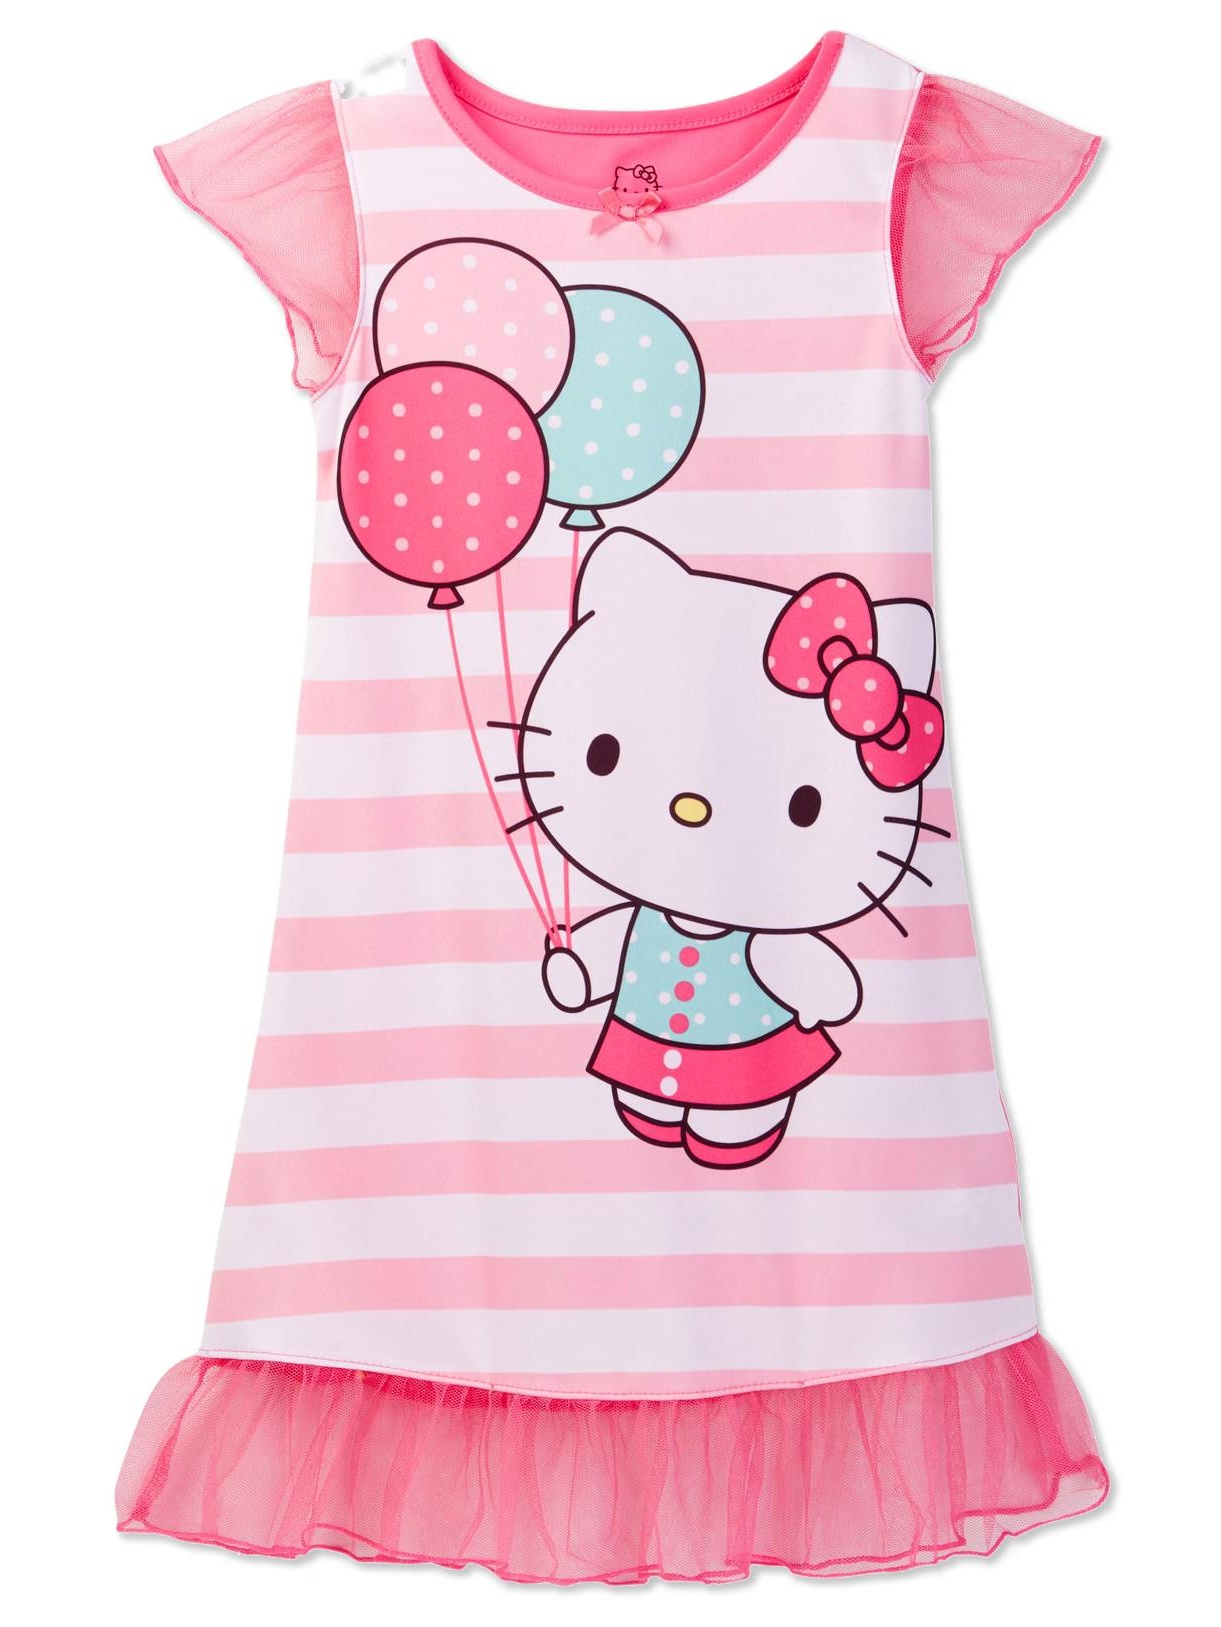 Toddler Girls' Pink Striped Dorm Nightgown, Gown Sizes 2T-4T